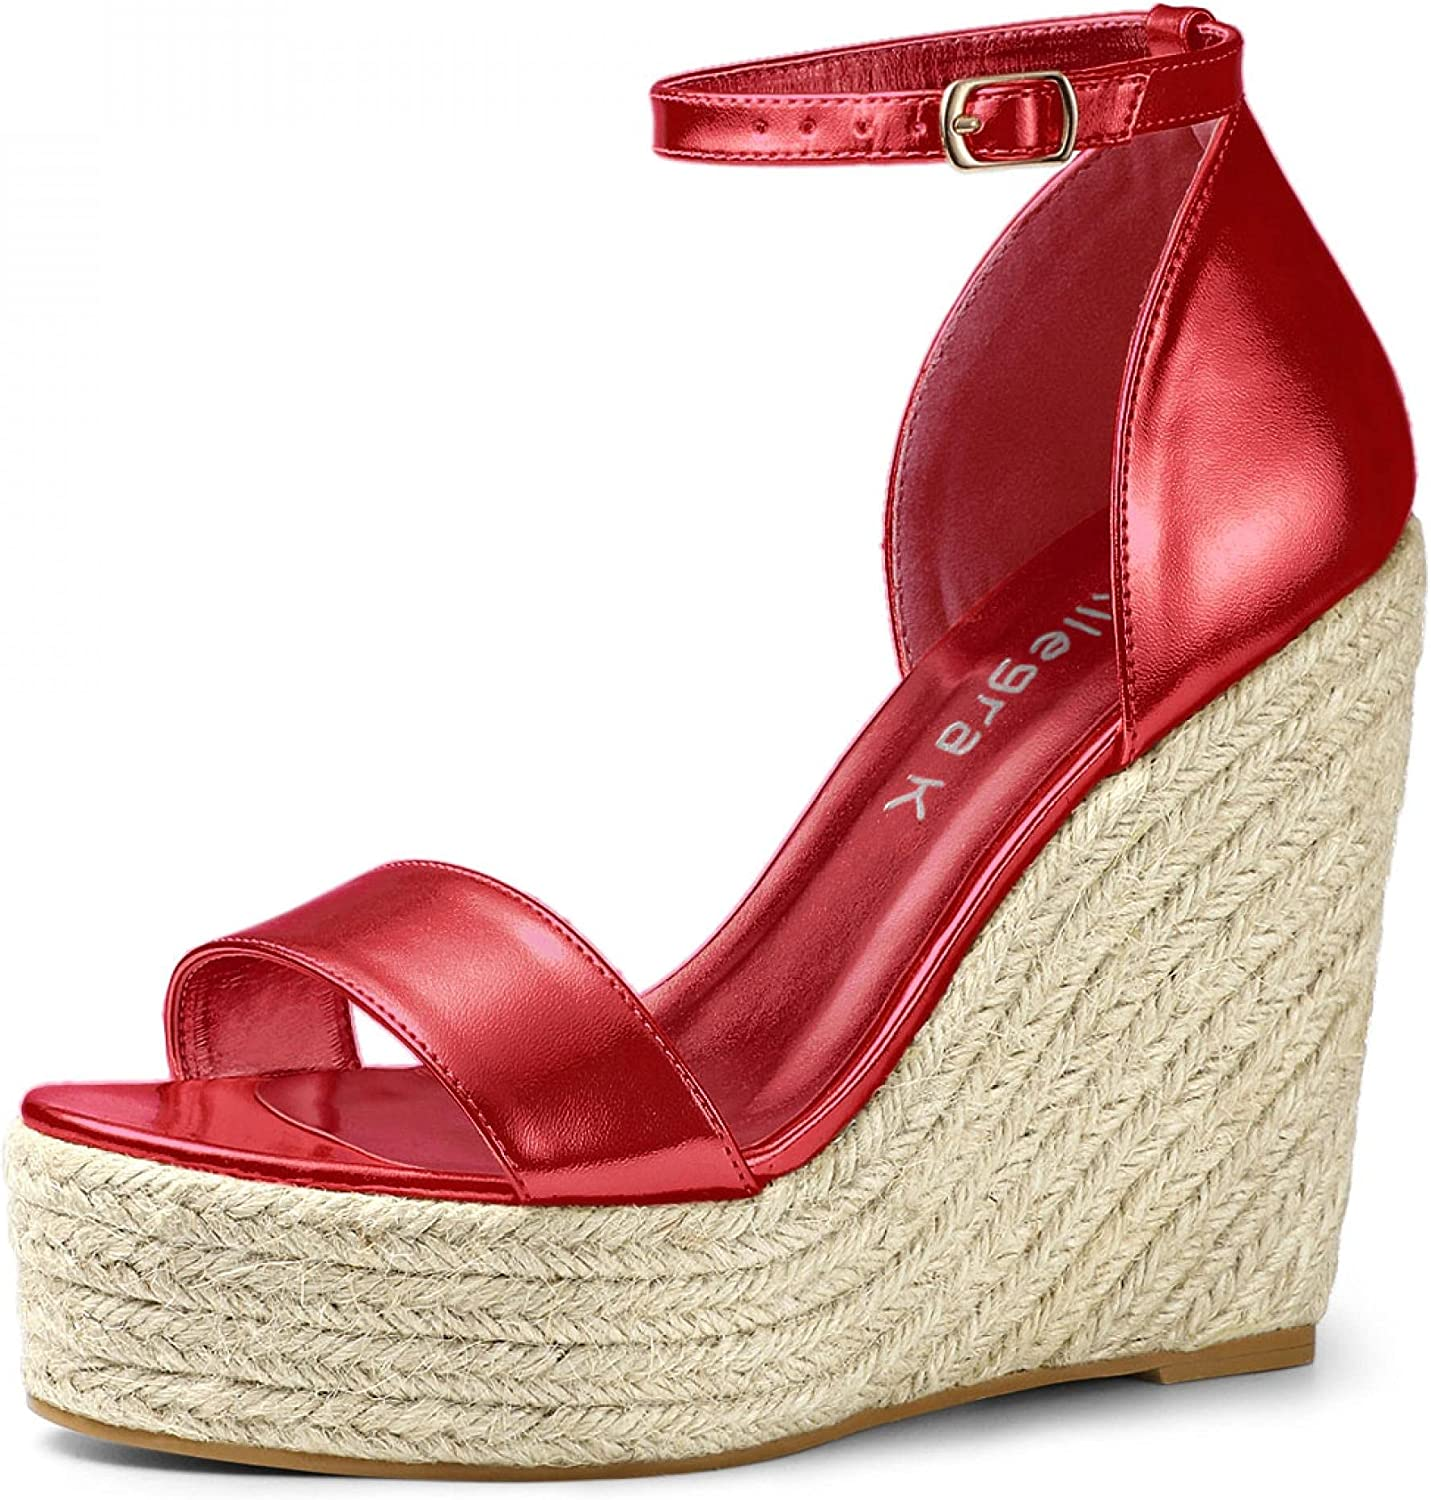 Allegra K Women's Shipping included Open Max 85% OFF Toe Espadrille Platform Wedges Sandals